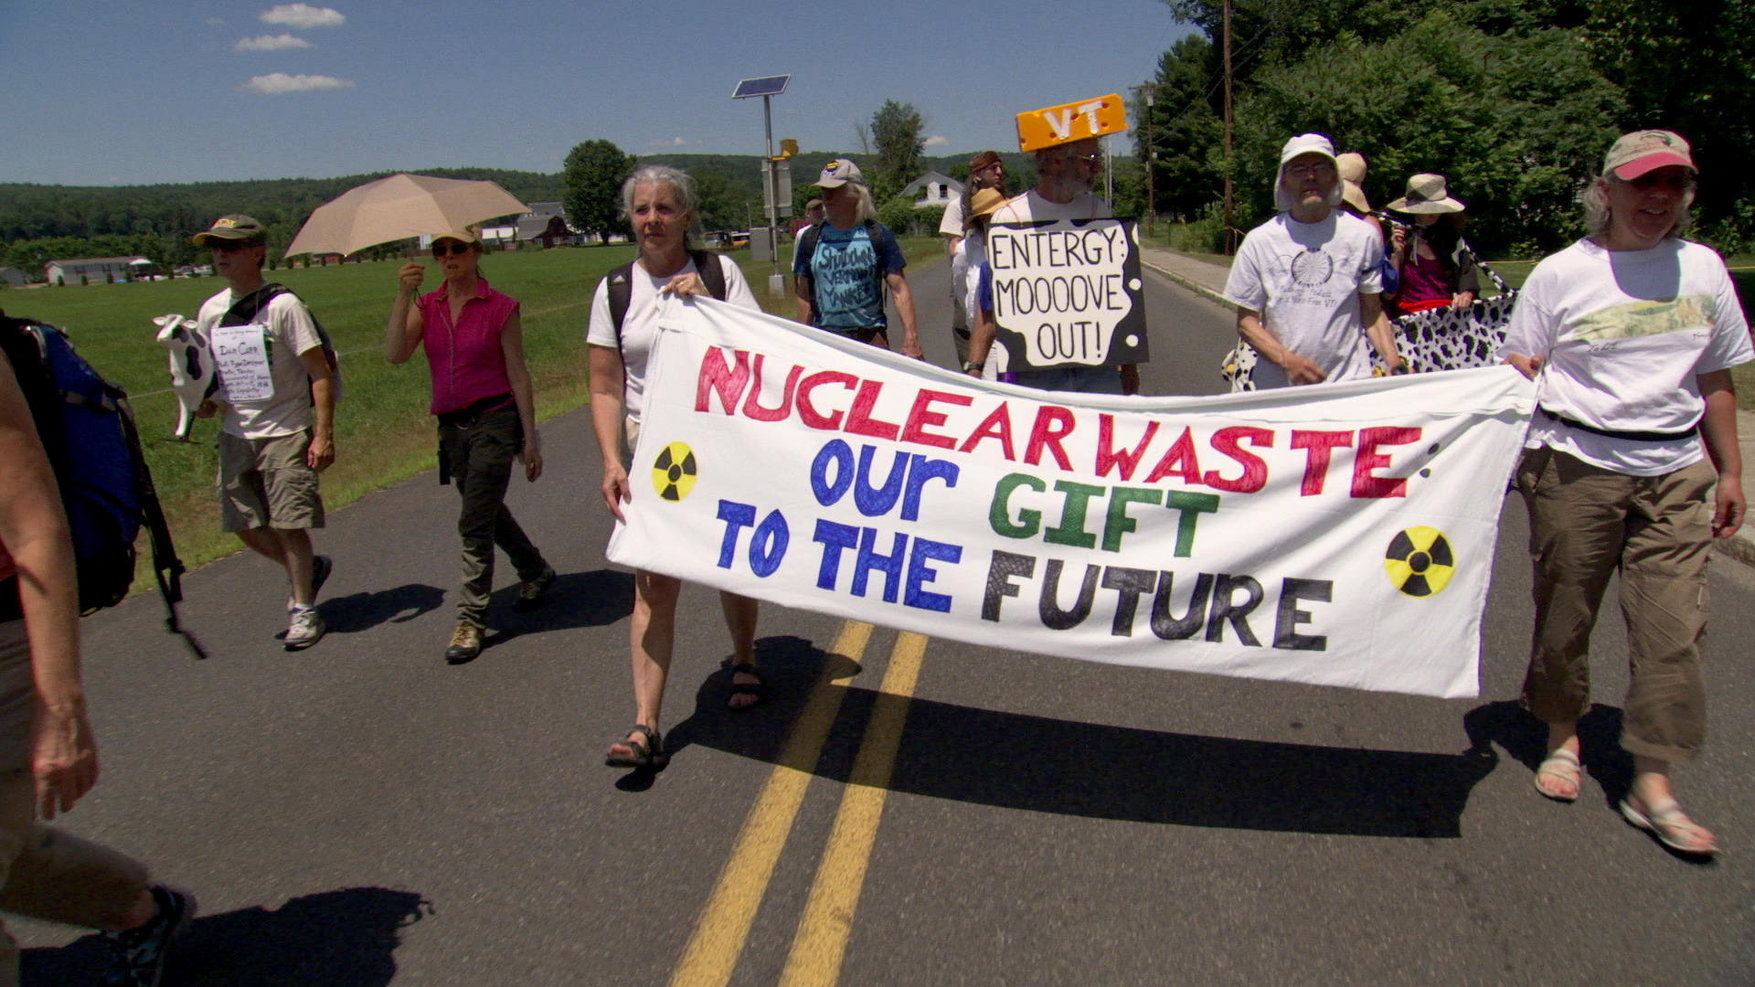 36-POWER_STRUGGLE-Nuclear-Waste-Gift-To-